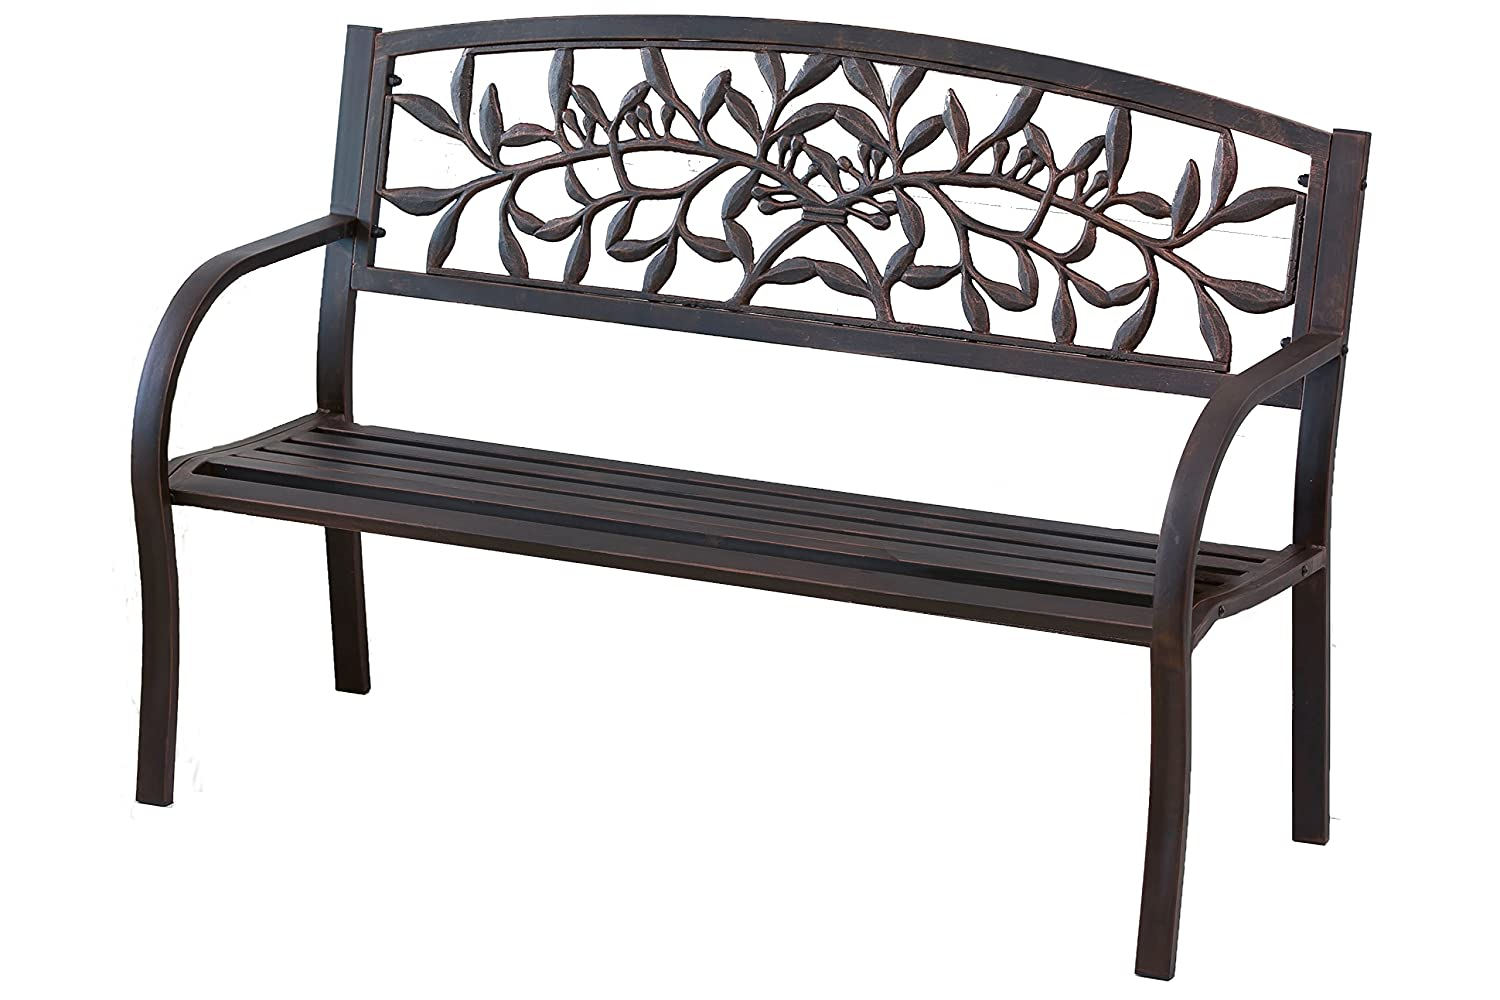 pl at com red l outdoors lowes benches outdoor in treasures garden steel bench furniture patio shop w x metal